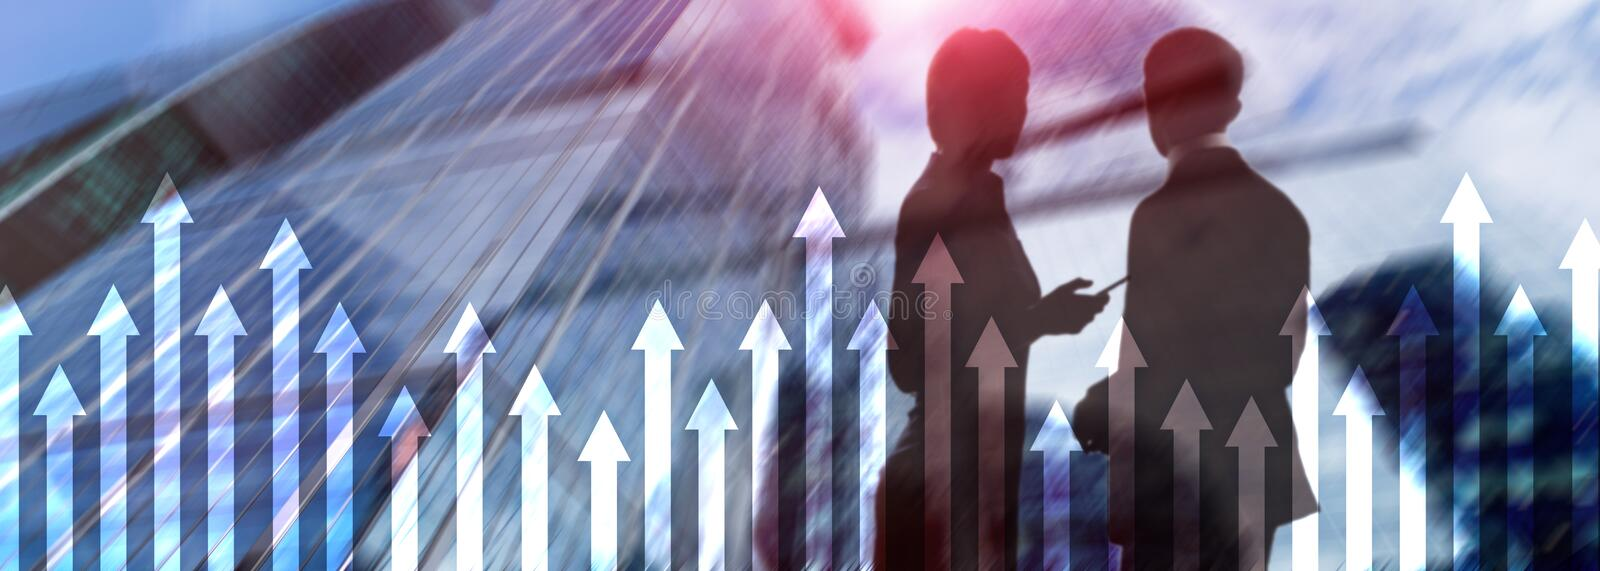 Up arrow graph on skyscraper background. Invesment and financial growth concept royalty free stock image